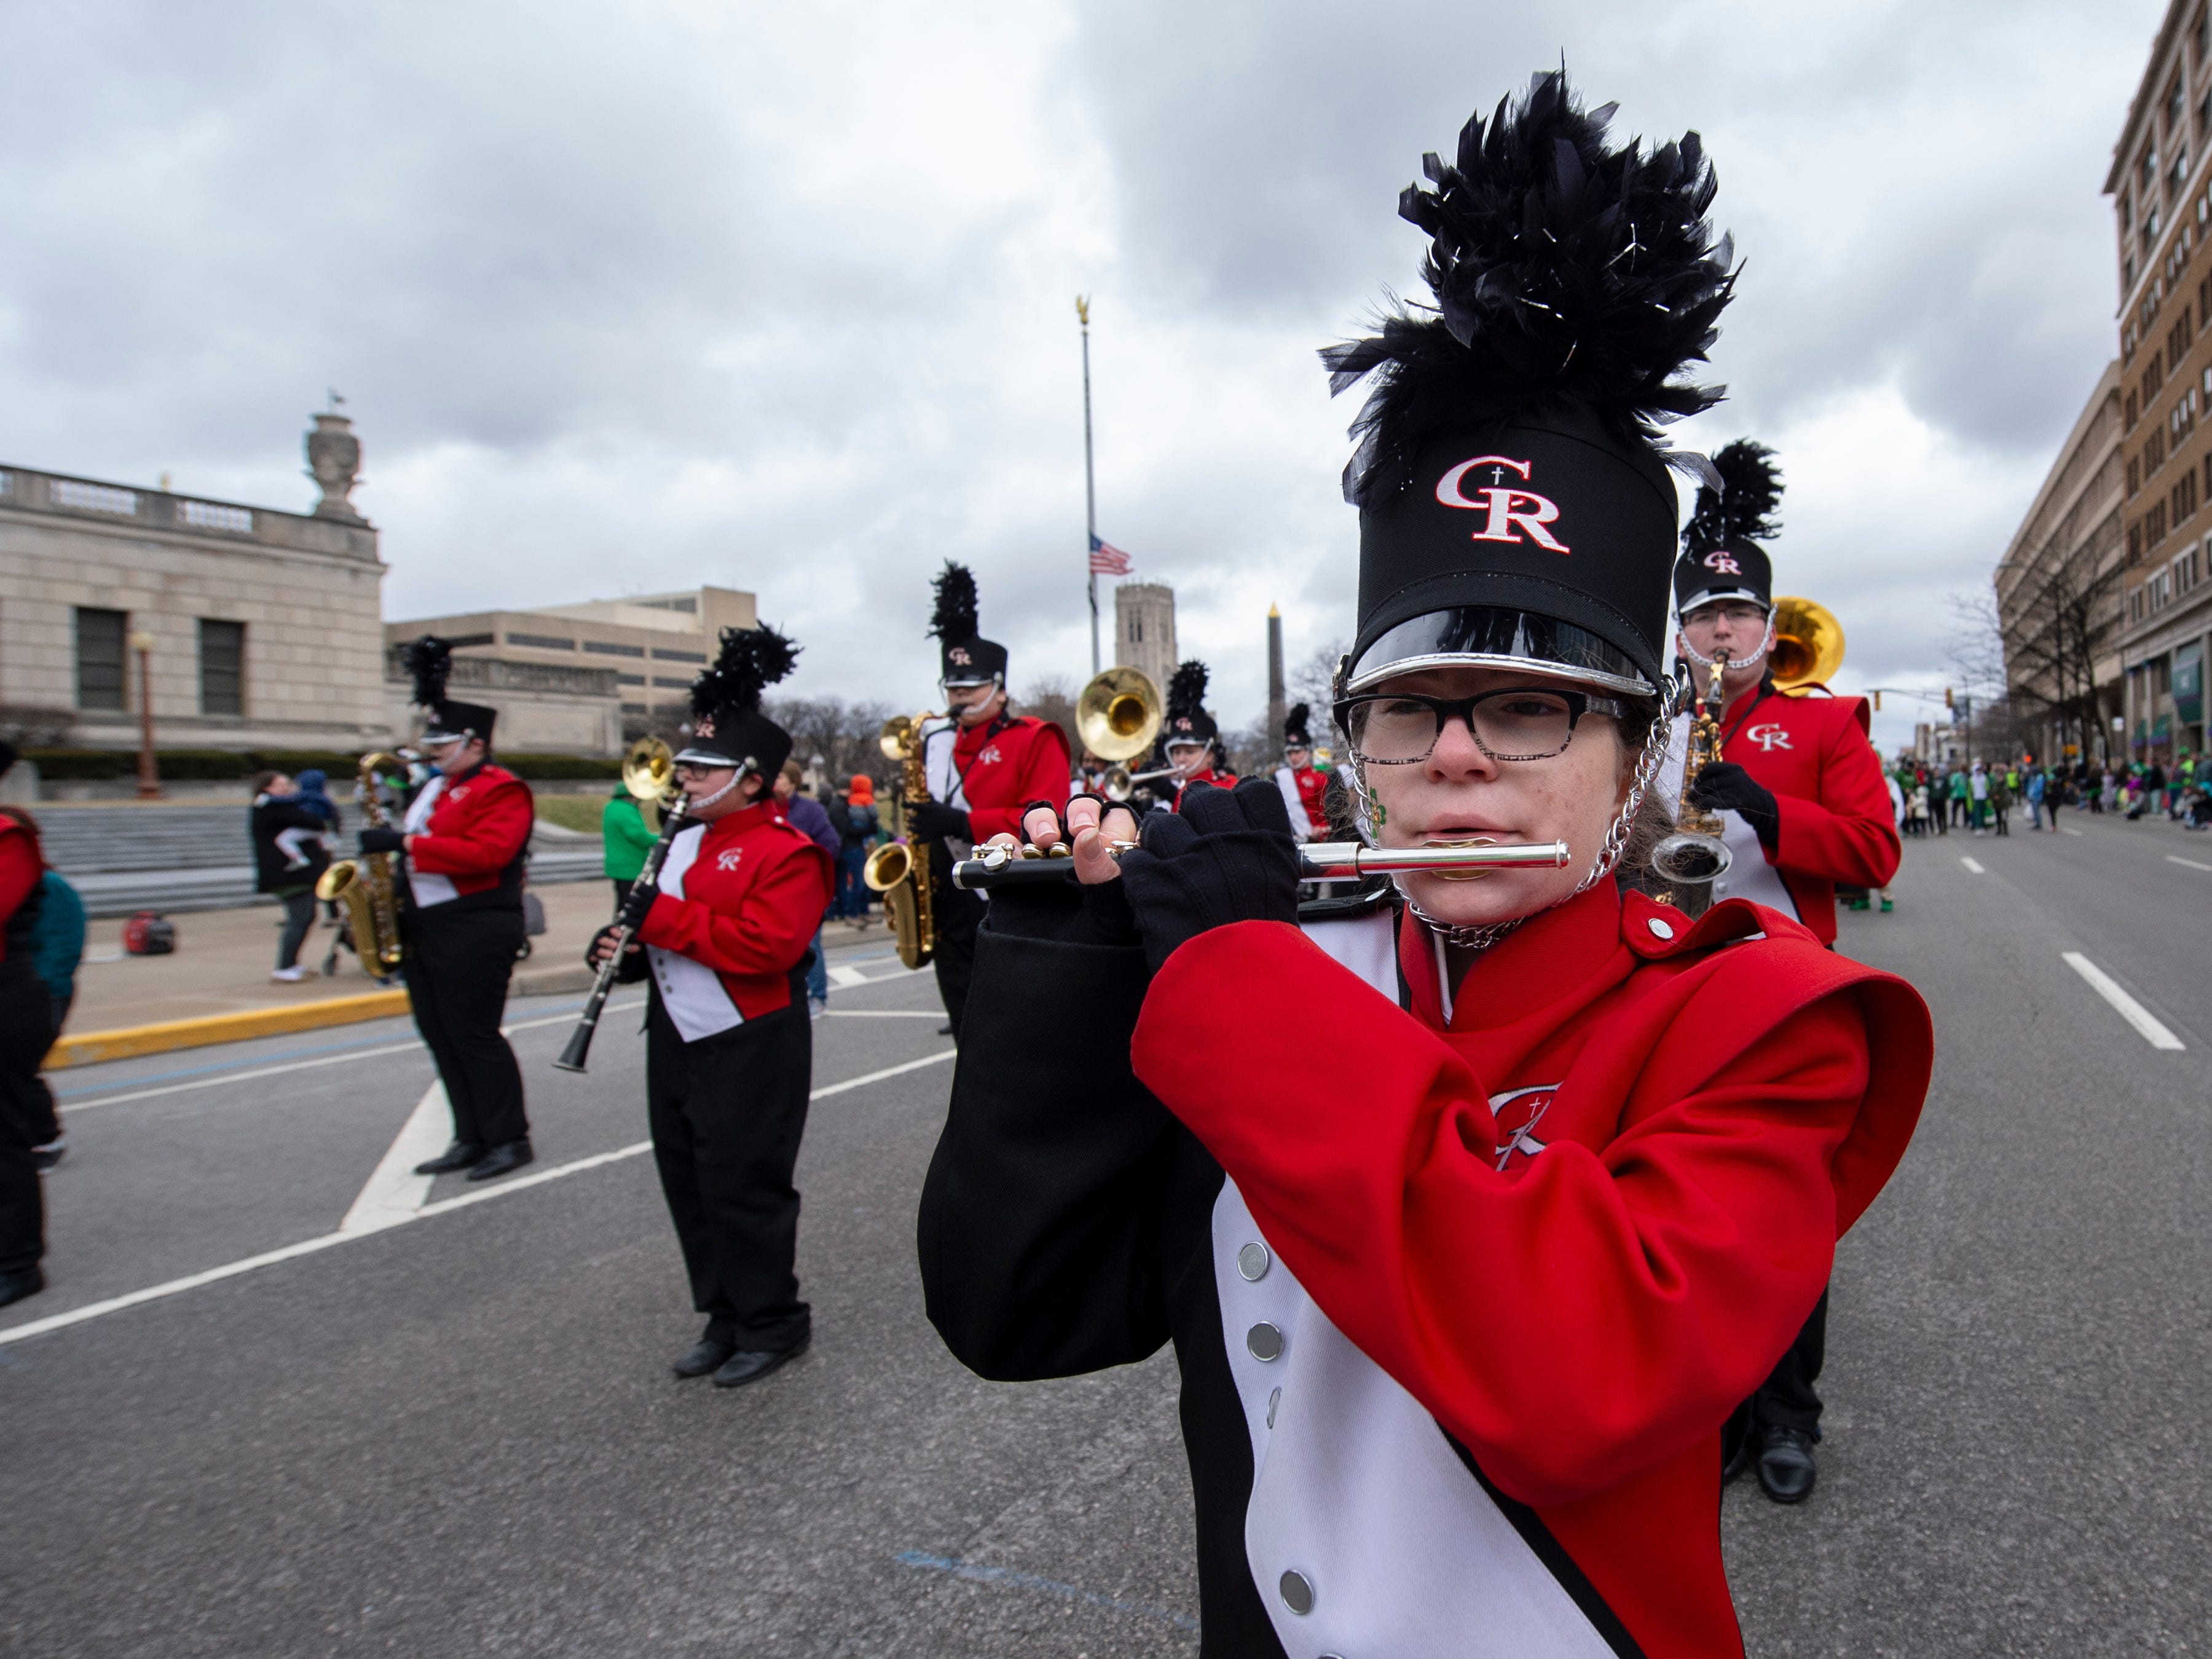 Mariah Martin plays her piccolo with the Cardinal Ritter Marching Band in the parade. The 39th annual St. Patrick's Day Parade navigated the streets of Indianapolis, Friday, March 15, 2019.